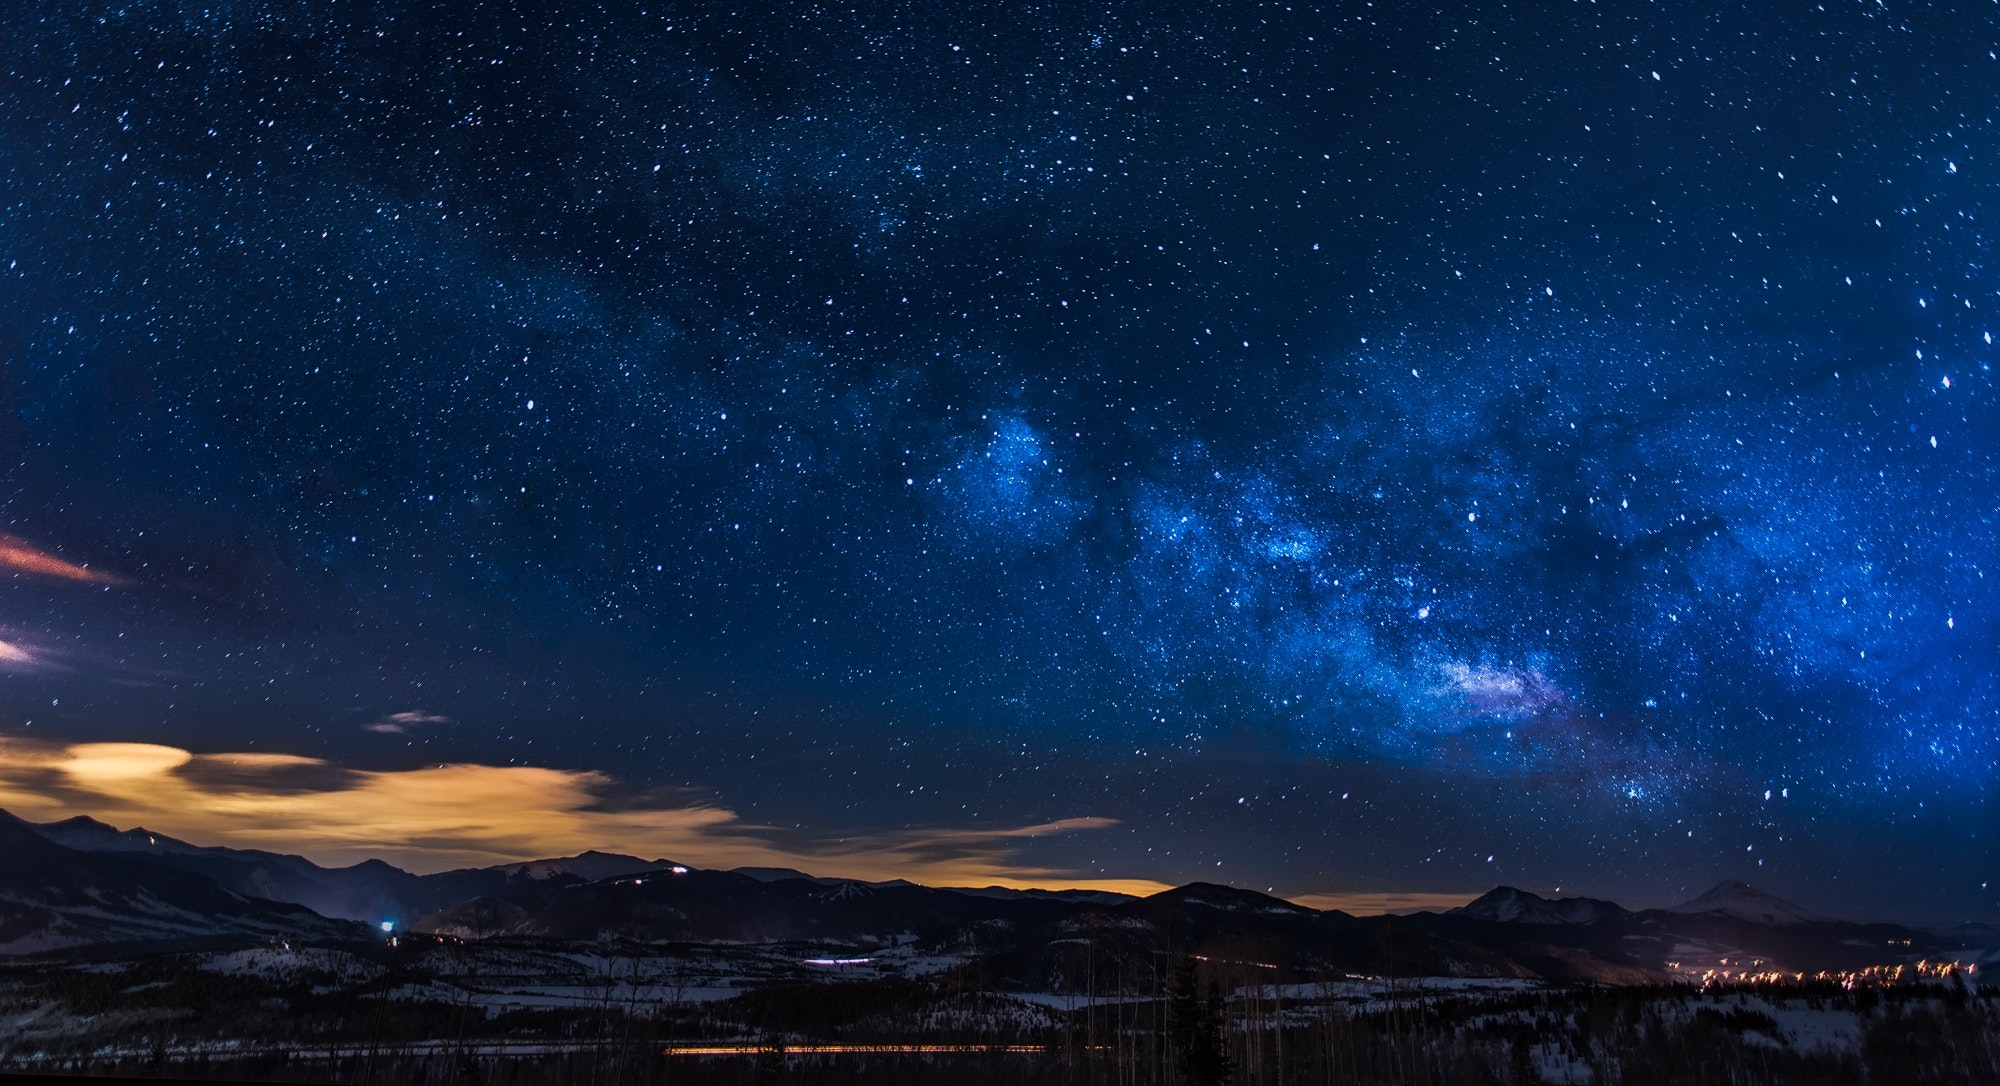 Browse Through Our Collection Of Sky Pictures And Images The High Quality Photos That Will Take Your Breath Away